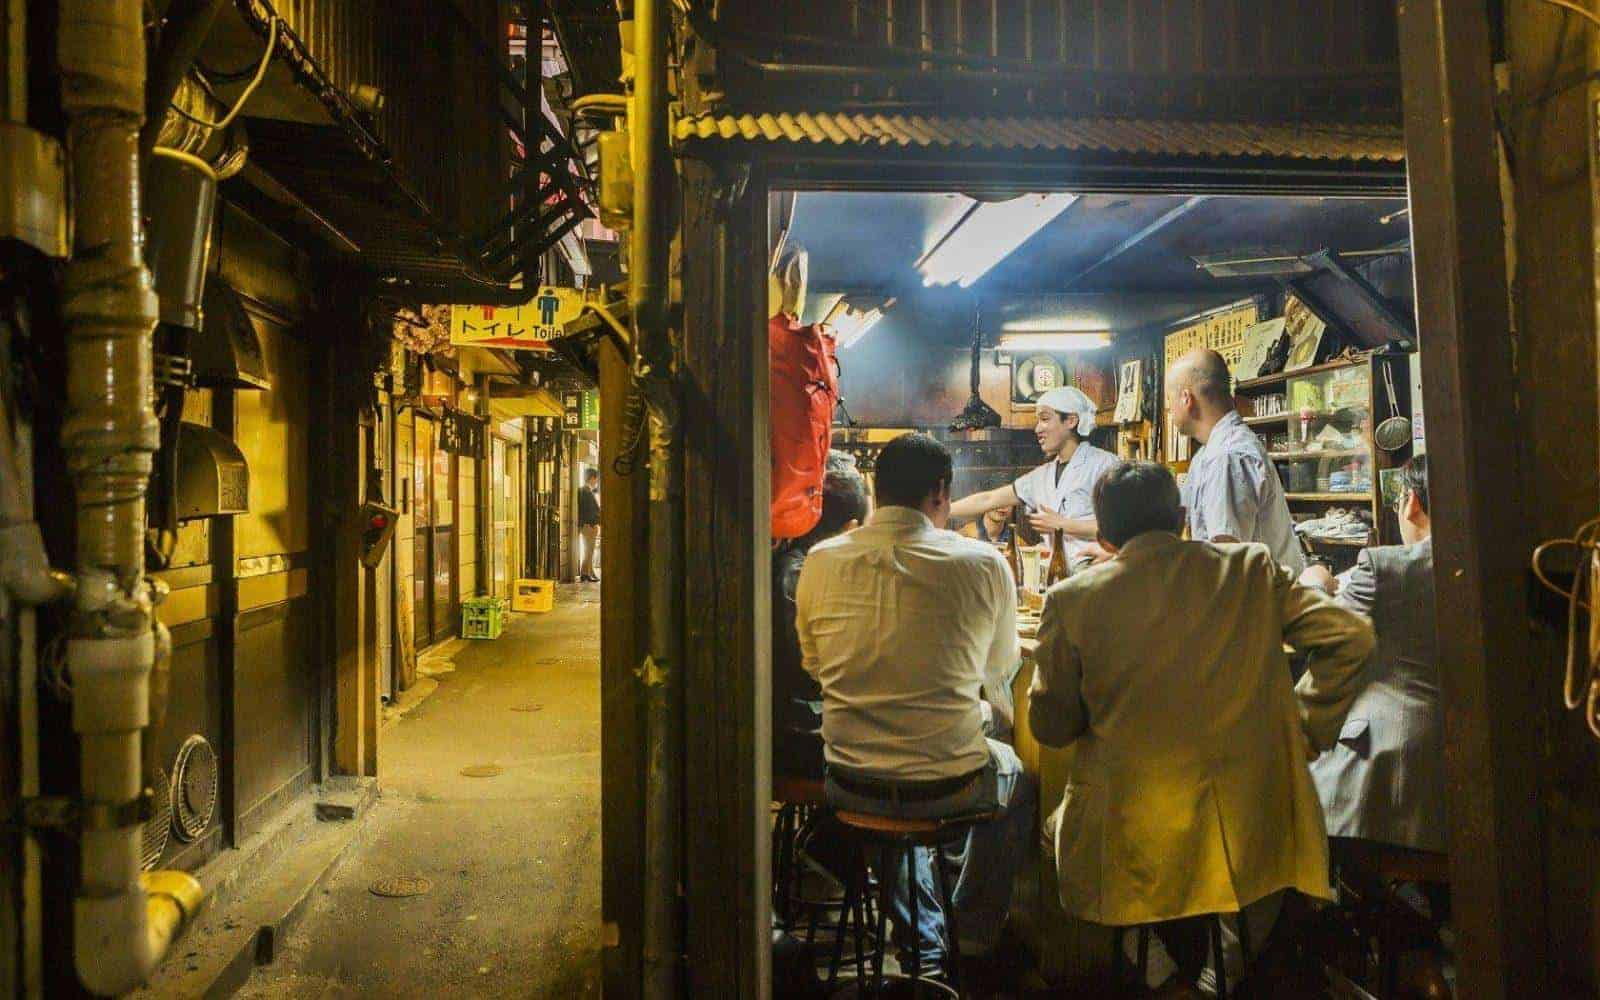 Tokyo's tiniest drinking dens a guide to Golden Gai